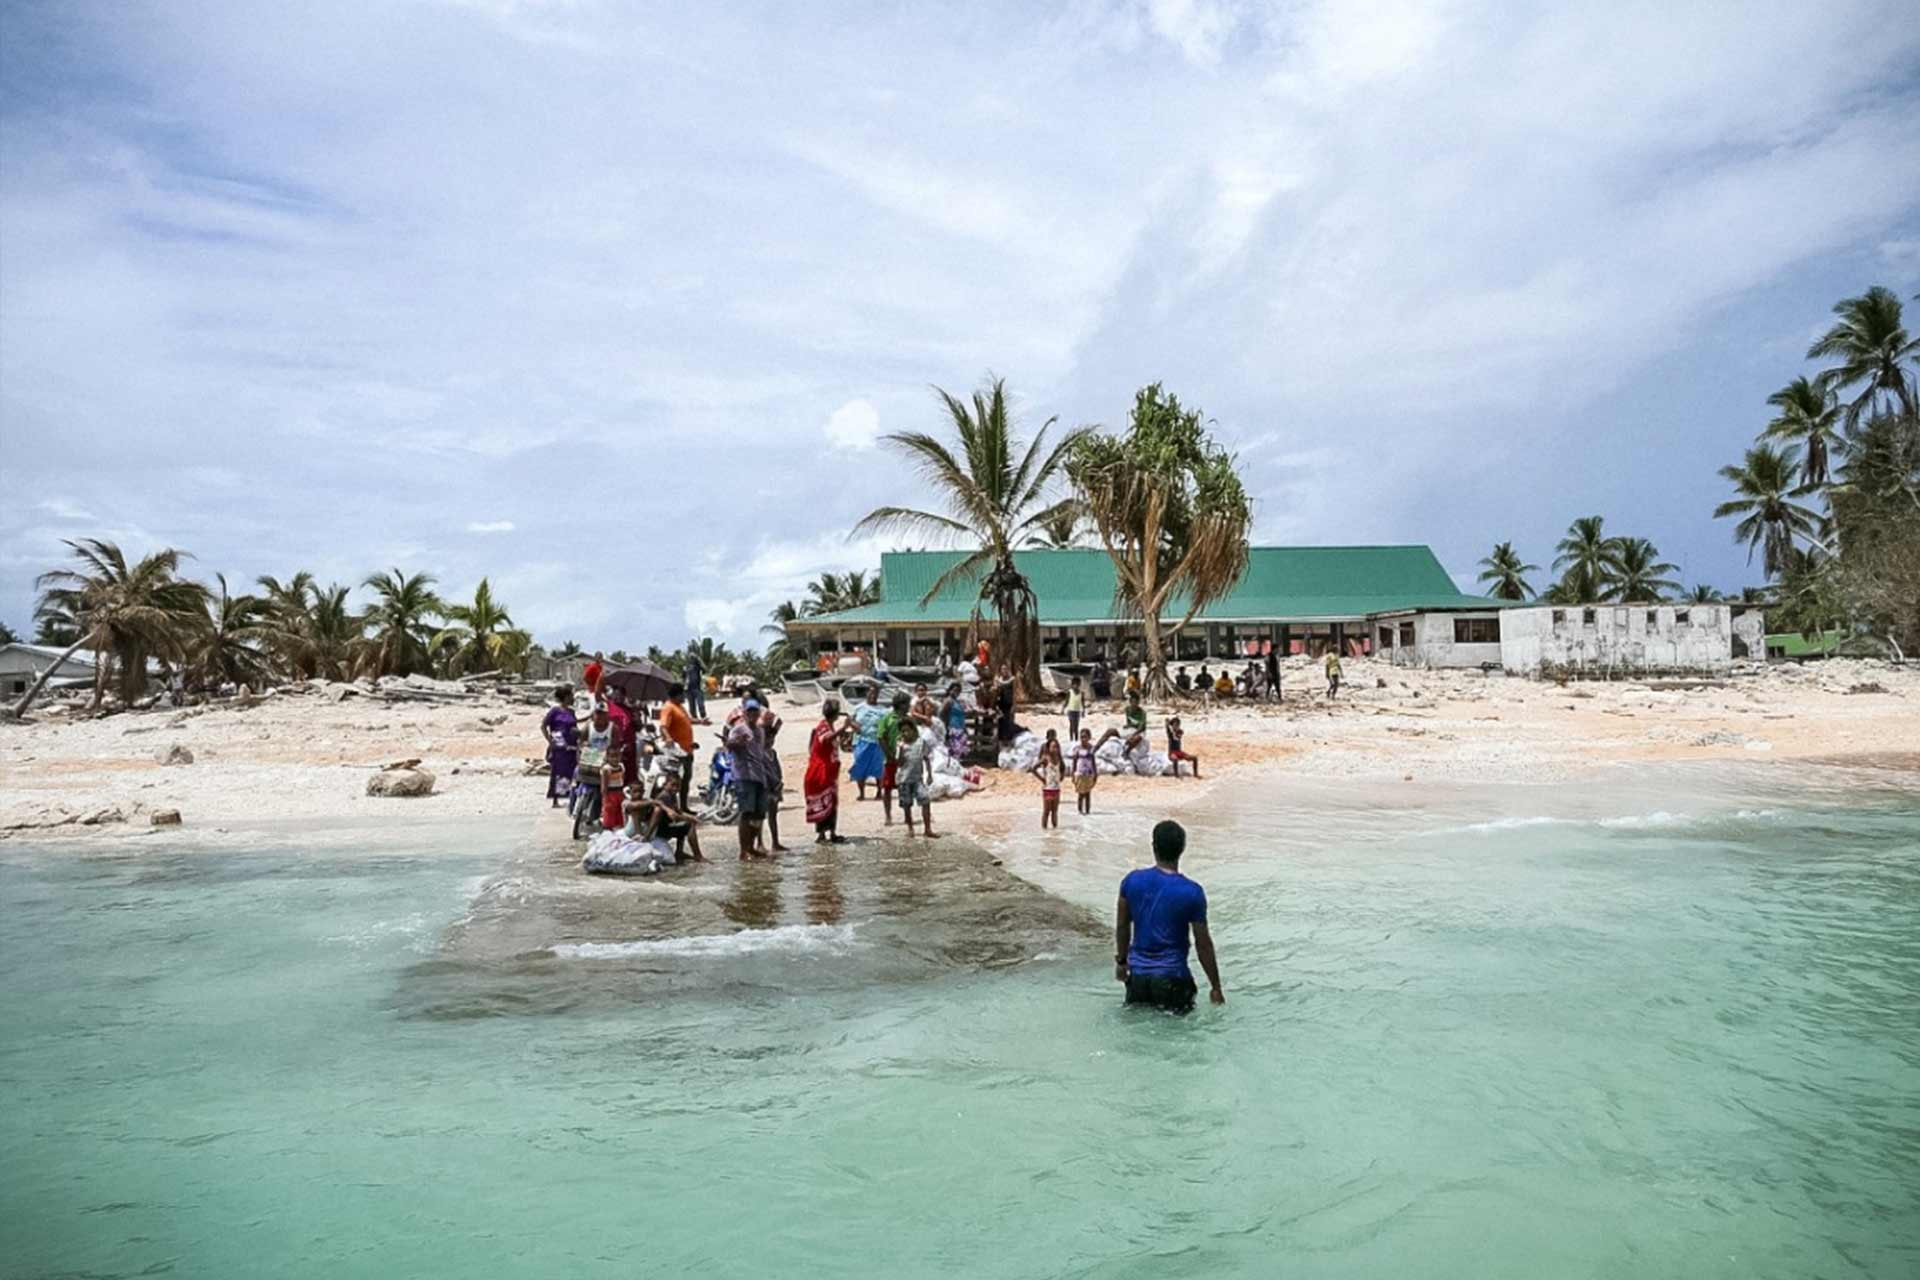 In Tuvalu, coastal areas are highly vulnerable to climate change. The government of Tuvalu, in conjunction with the Green Climate Fund, created a scholarship to support young Tuvaluans studying in the field of coastal resilience. Photo: Silke von Brockhausen/UNDP